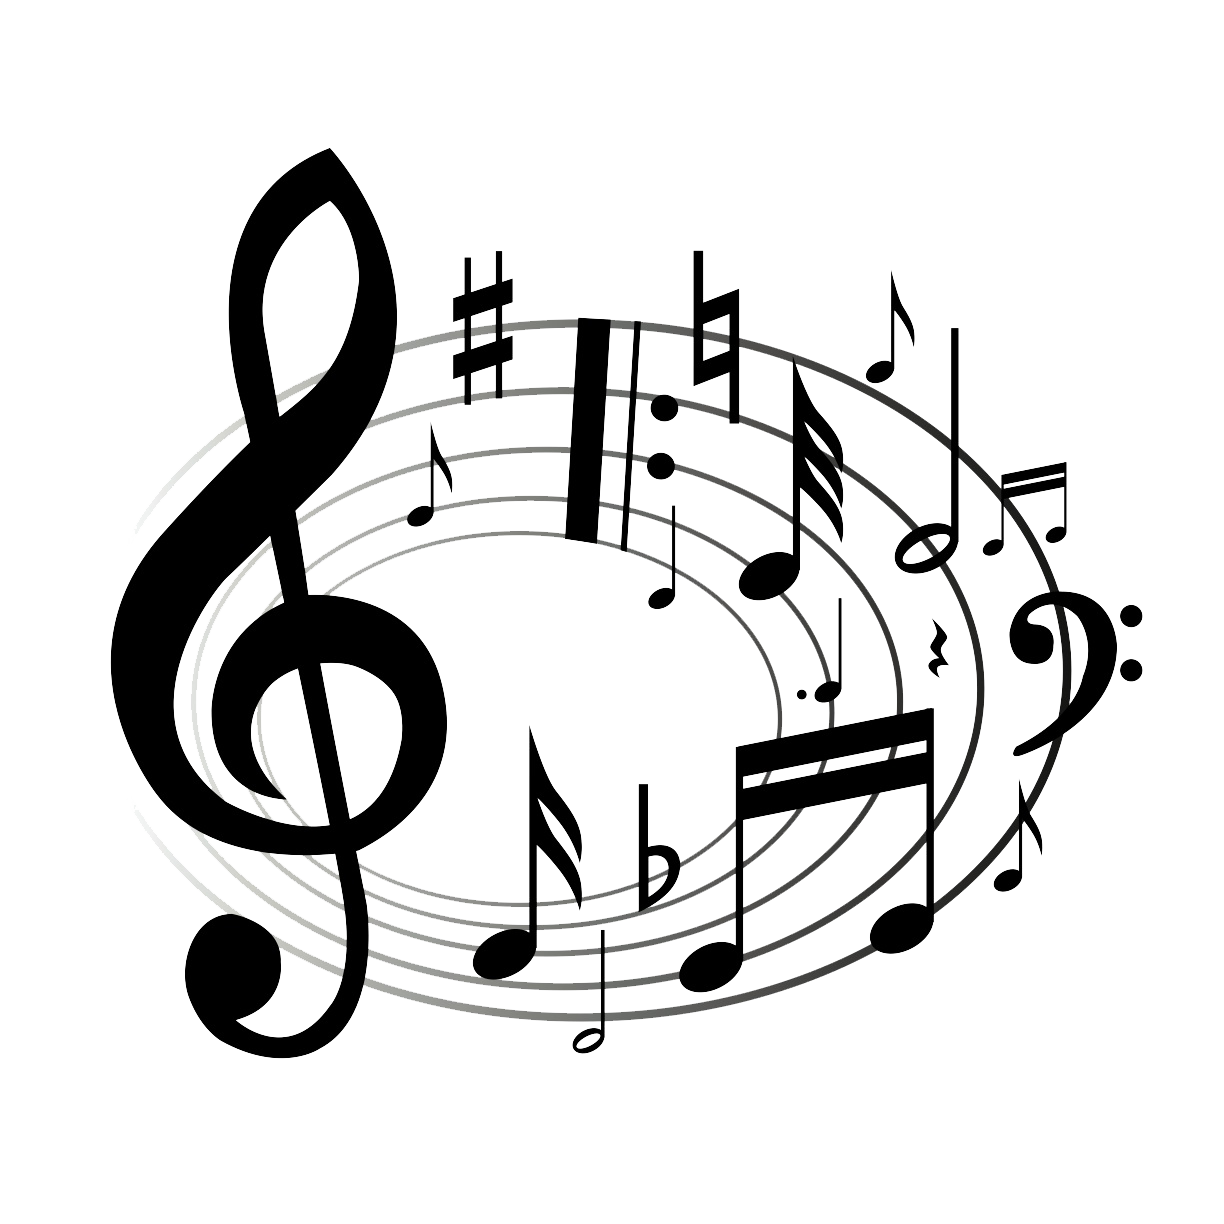 Music Notes Clipart 2-Music notes clipart 2-6